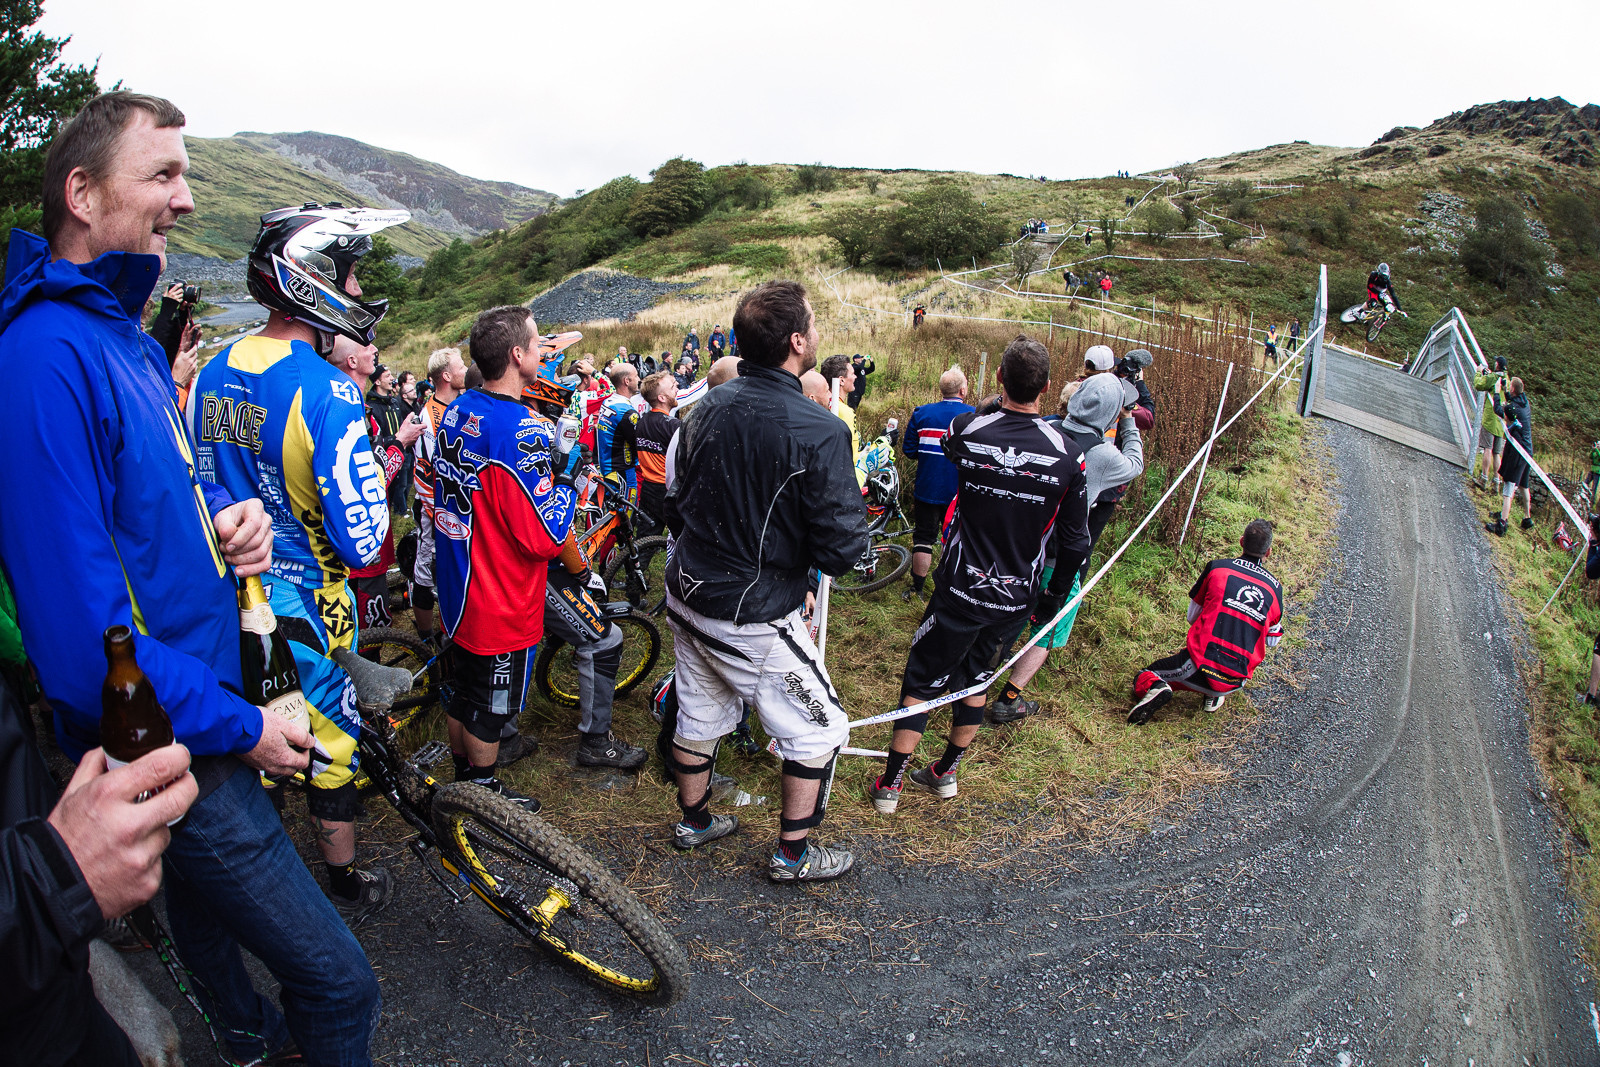 Wil Longden, BDS Legends Race - 2015 British Downhill Series Finals - Mountain Biking Pictures - Vital MTB